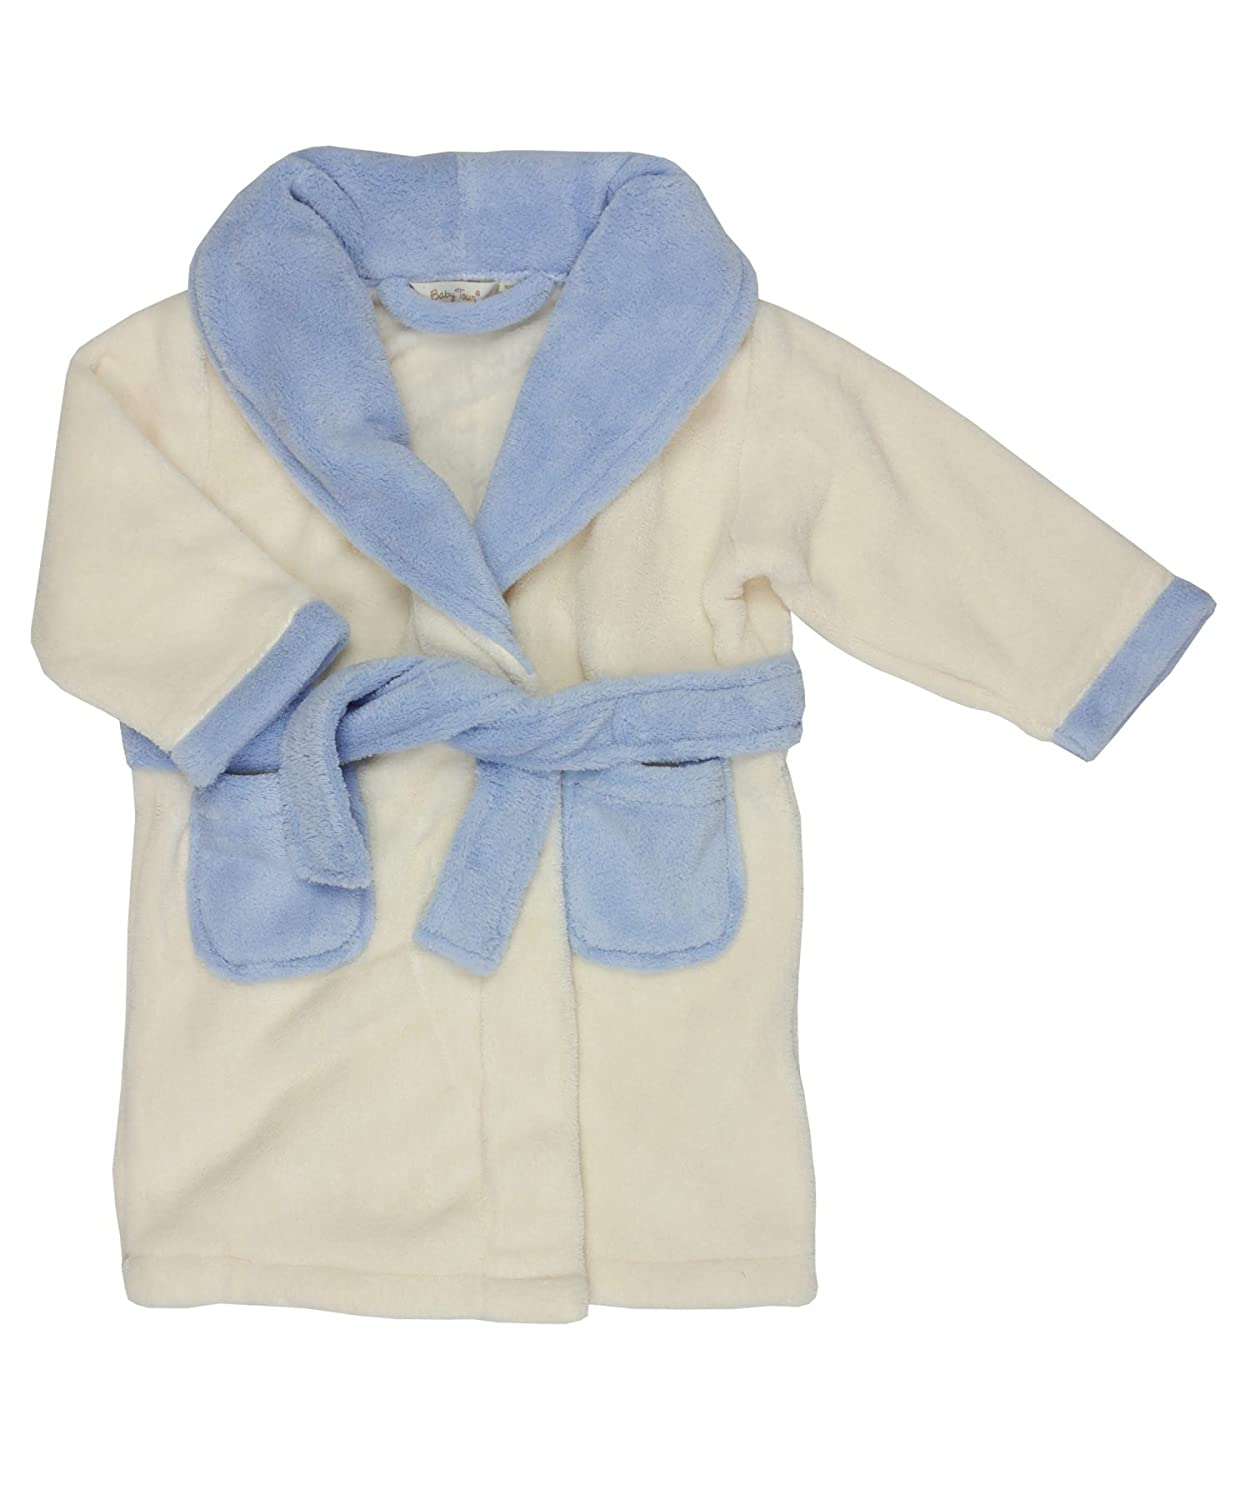 BABY TOWN Baby Boys Fleece Pocket Dressing Gown